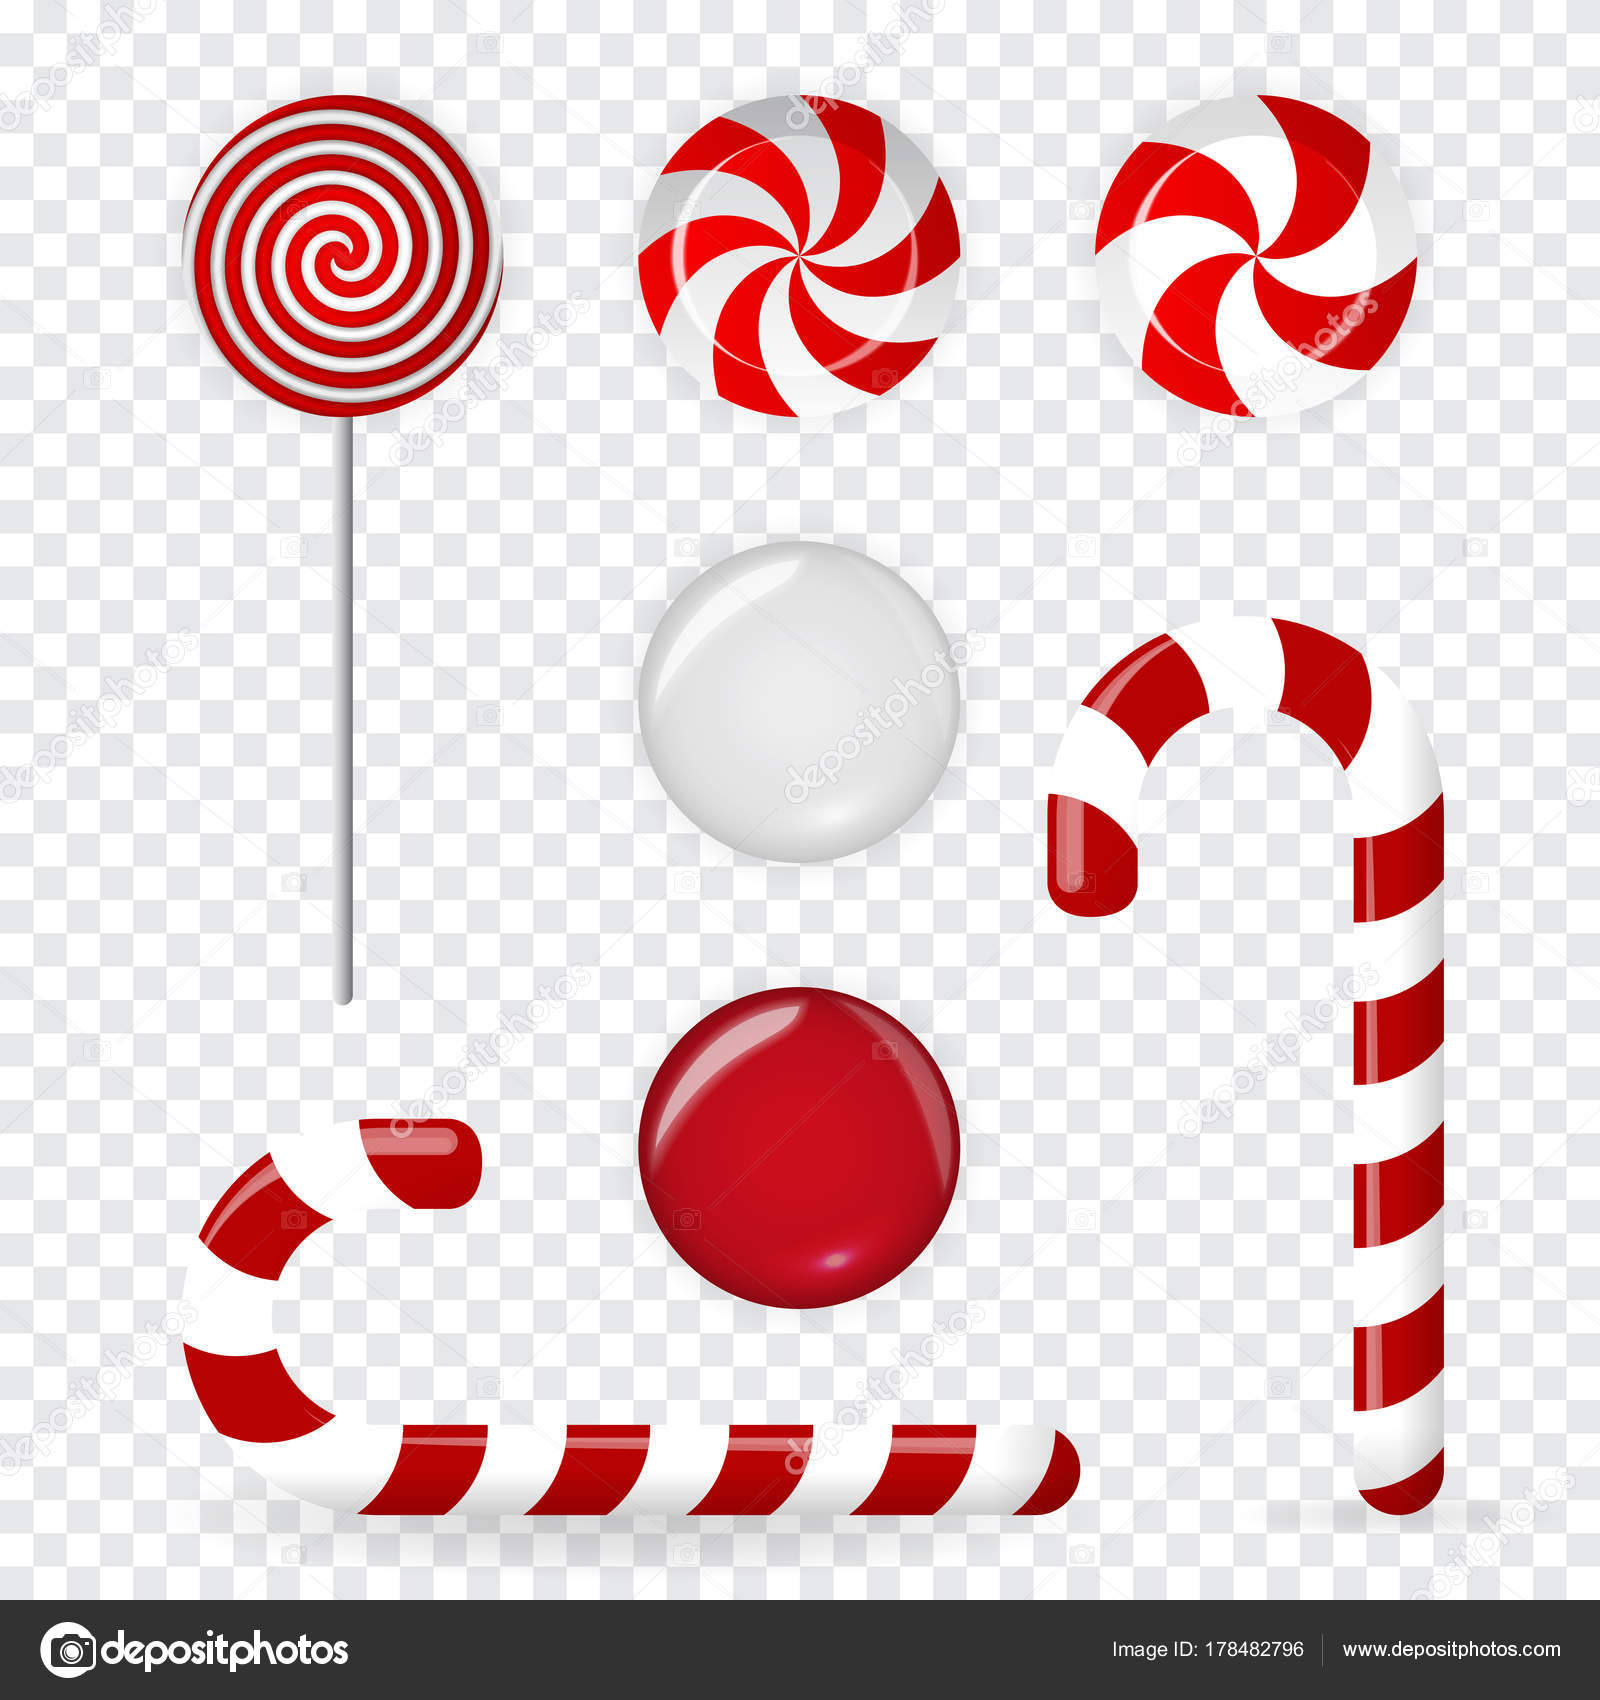 sweet candy of various forms cane circle on stick and flavors on transparent background decoration for the new year vector illustration